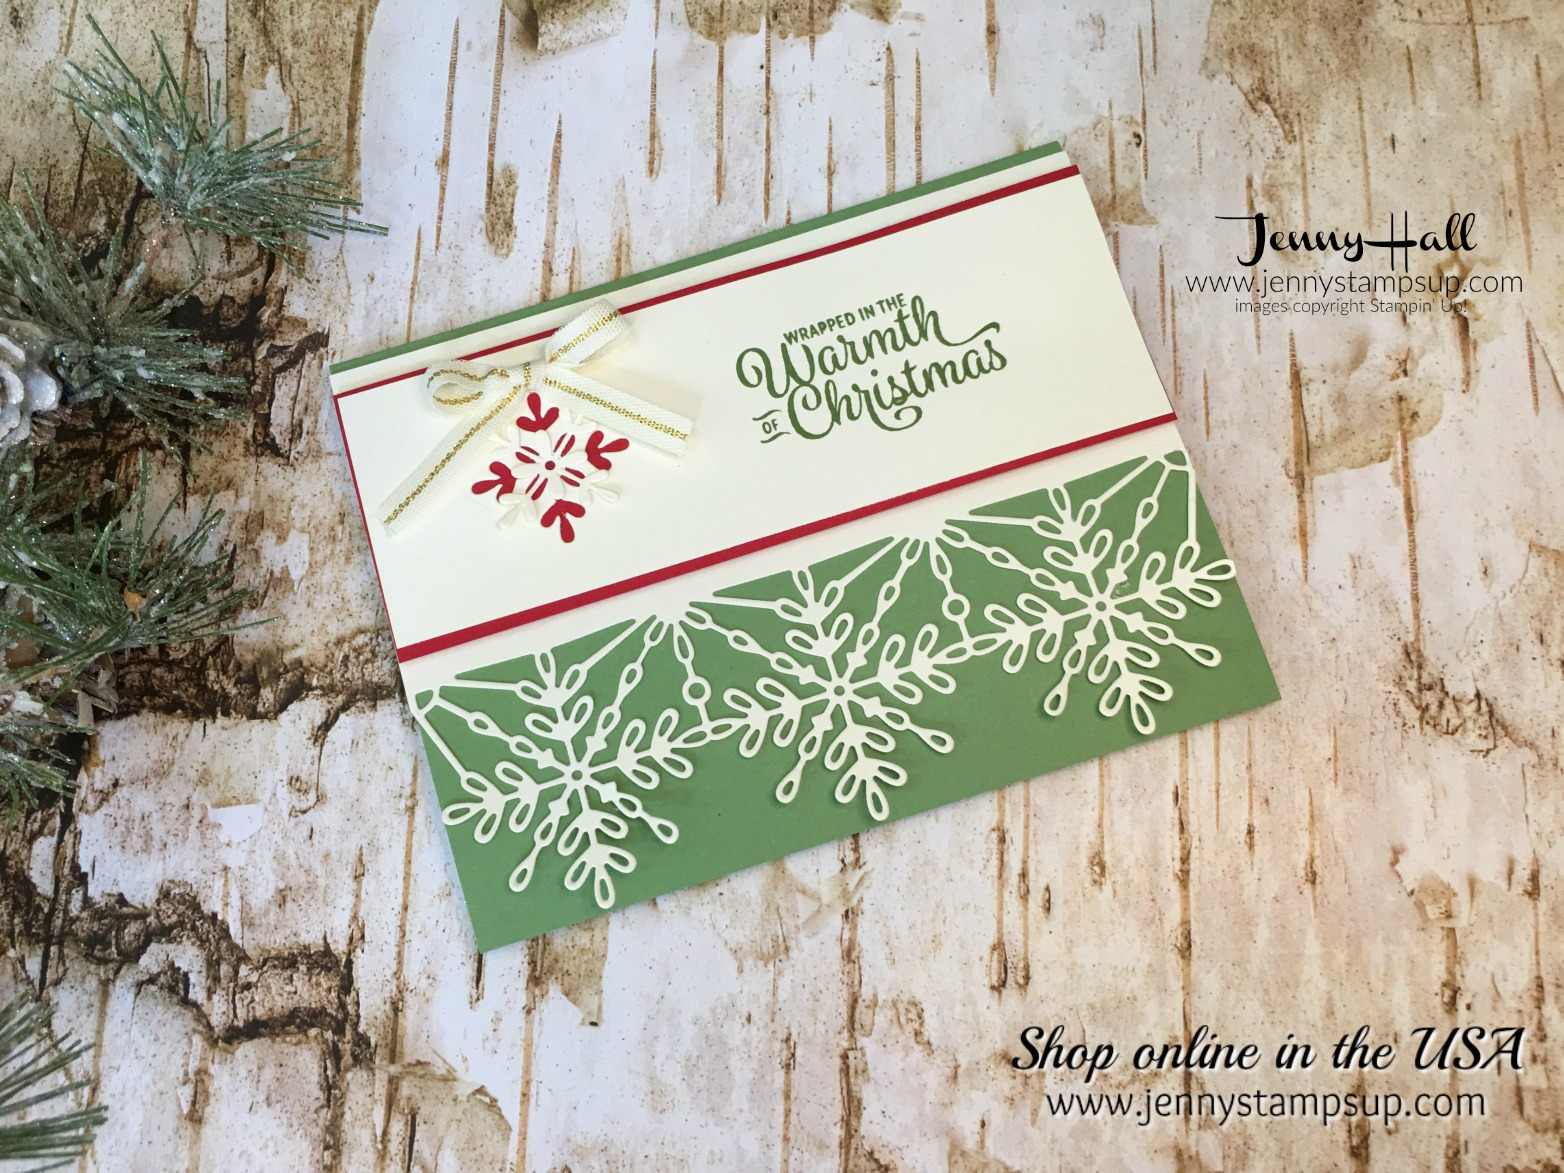 Snowflake Sentiments card by Jenny Hall at www.jennyhalldesign.com for cardmaking, scrapbooking, video tutorials, papercraft gift giving and free tutorials